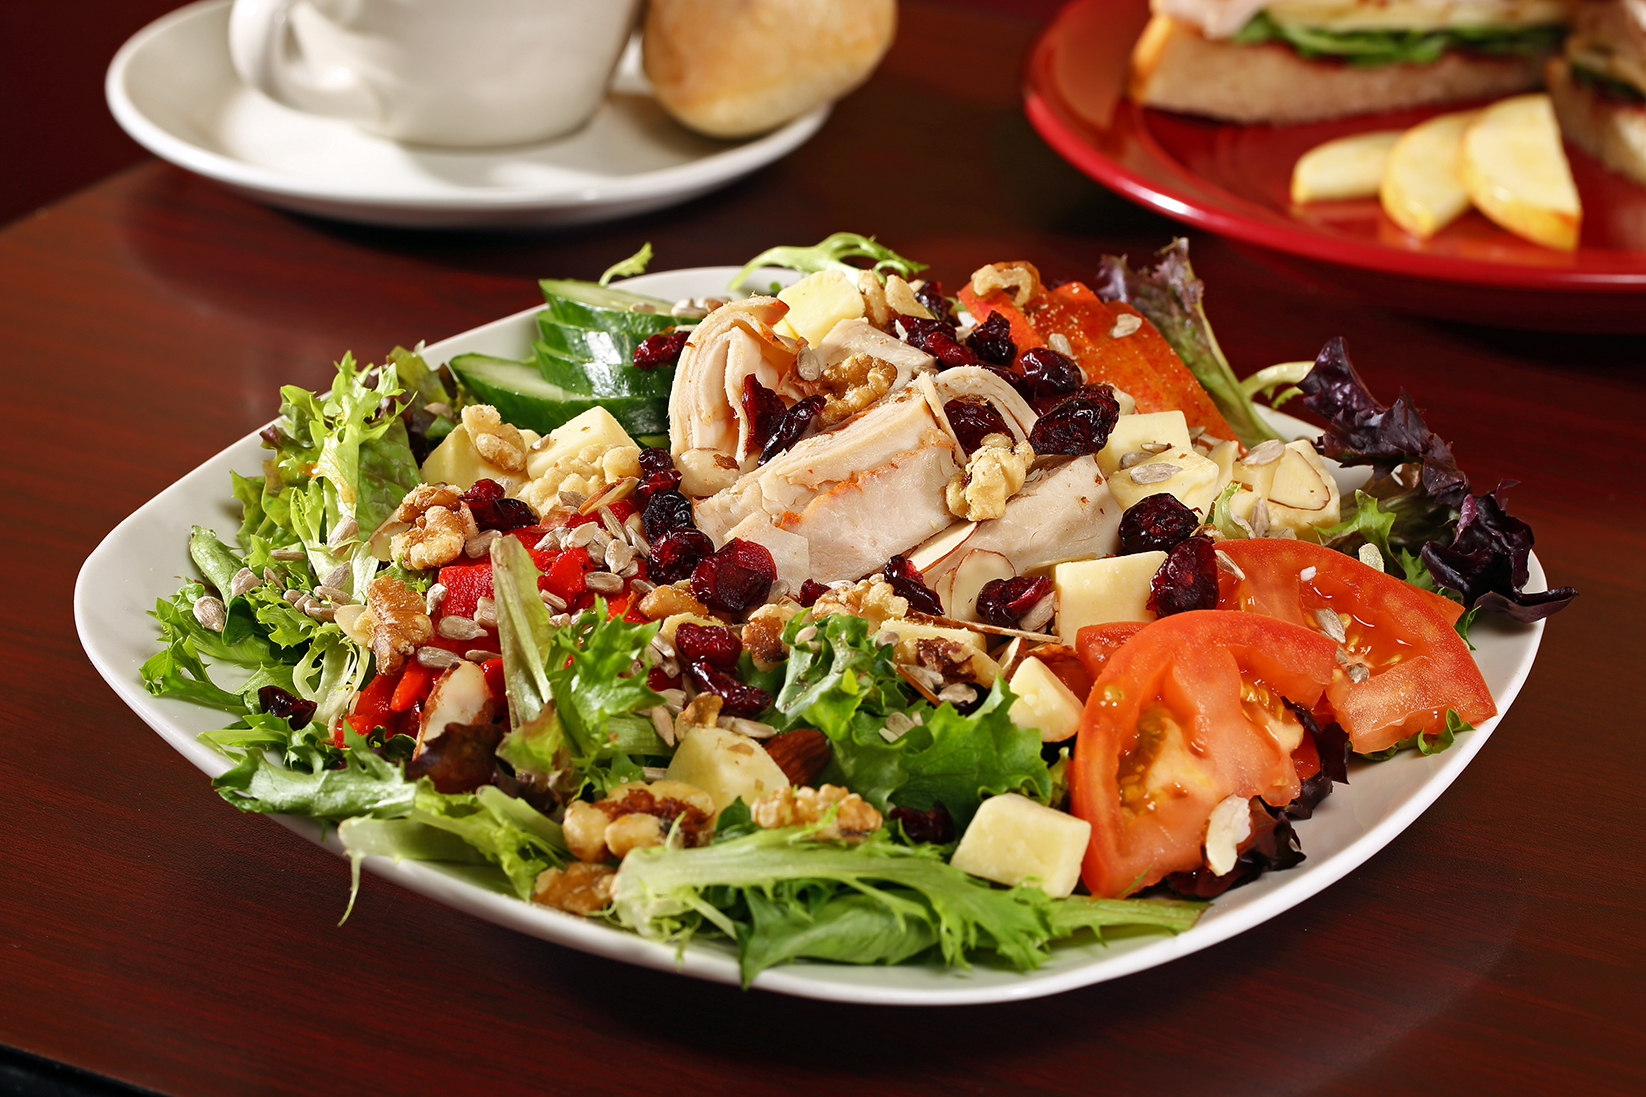 Stop by for lunch - See our lunch menu here!